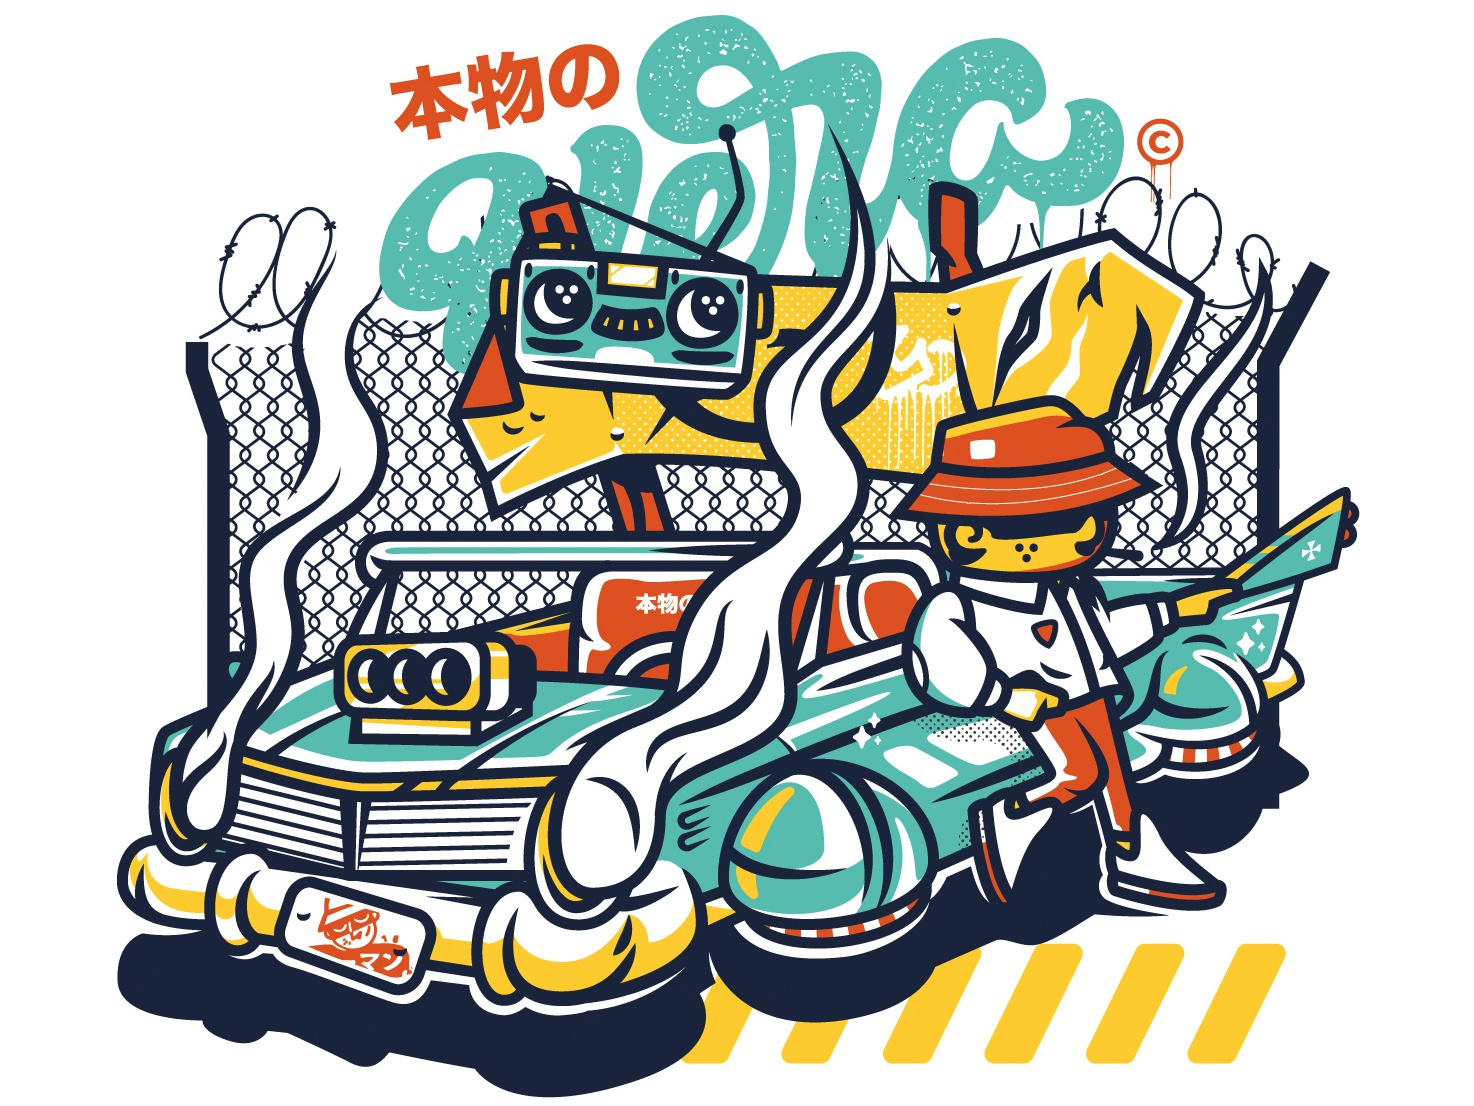 Milo goes Kyoto🚦 digital-painting ux ui font drips free icon logo drift branding typography lettering dribbble charactersdesign hera vector graffiti design illustration character